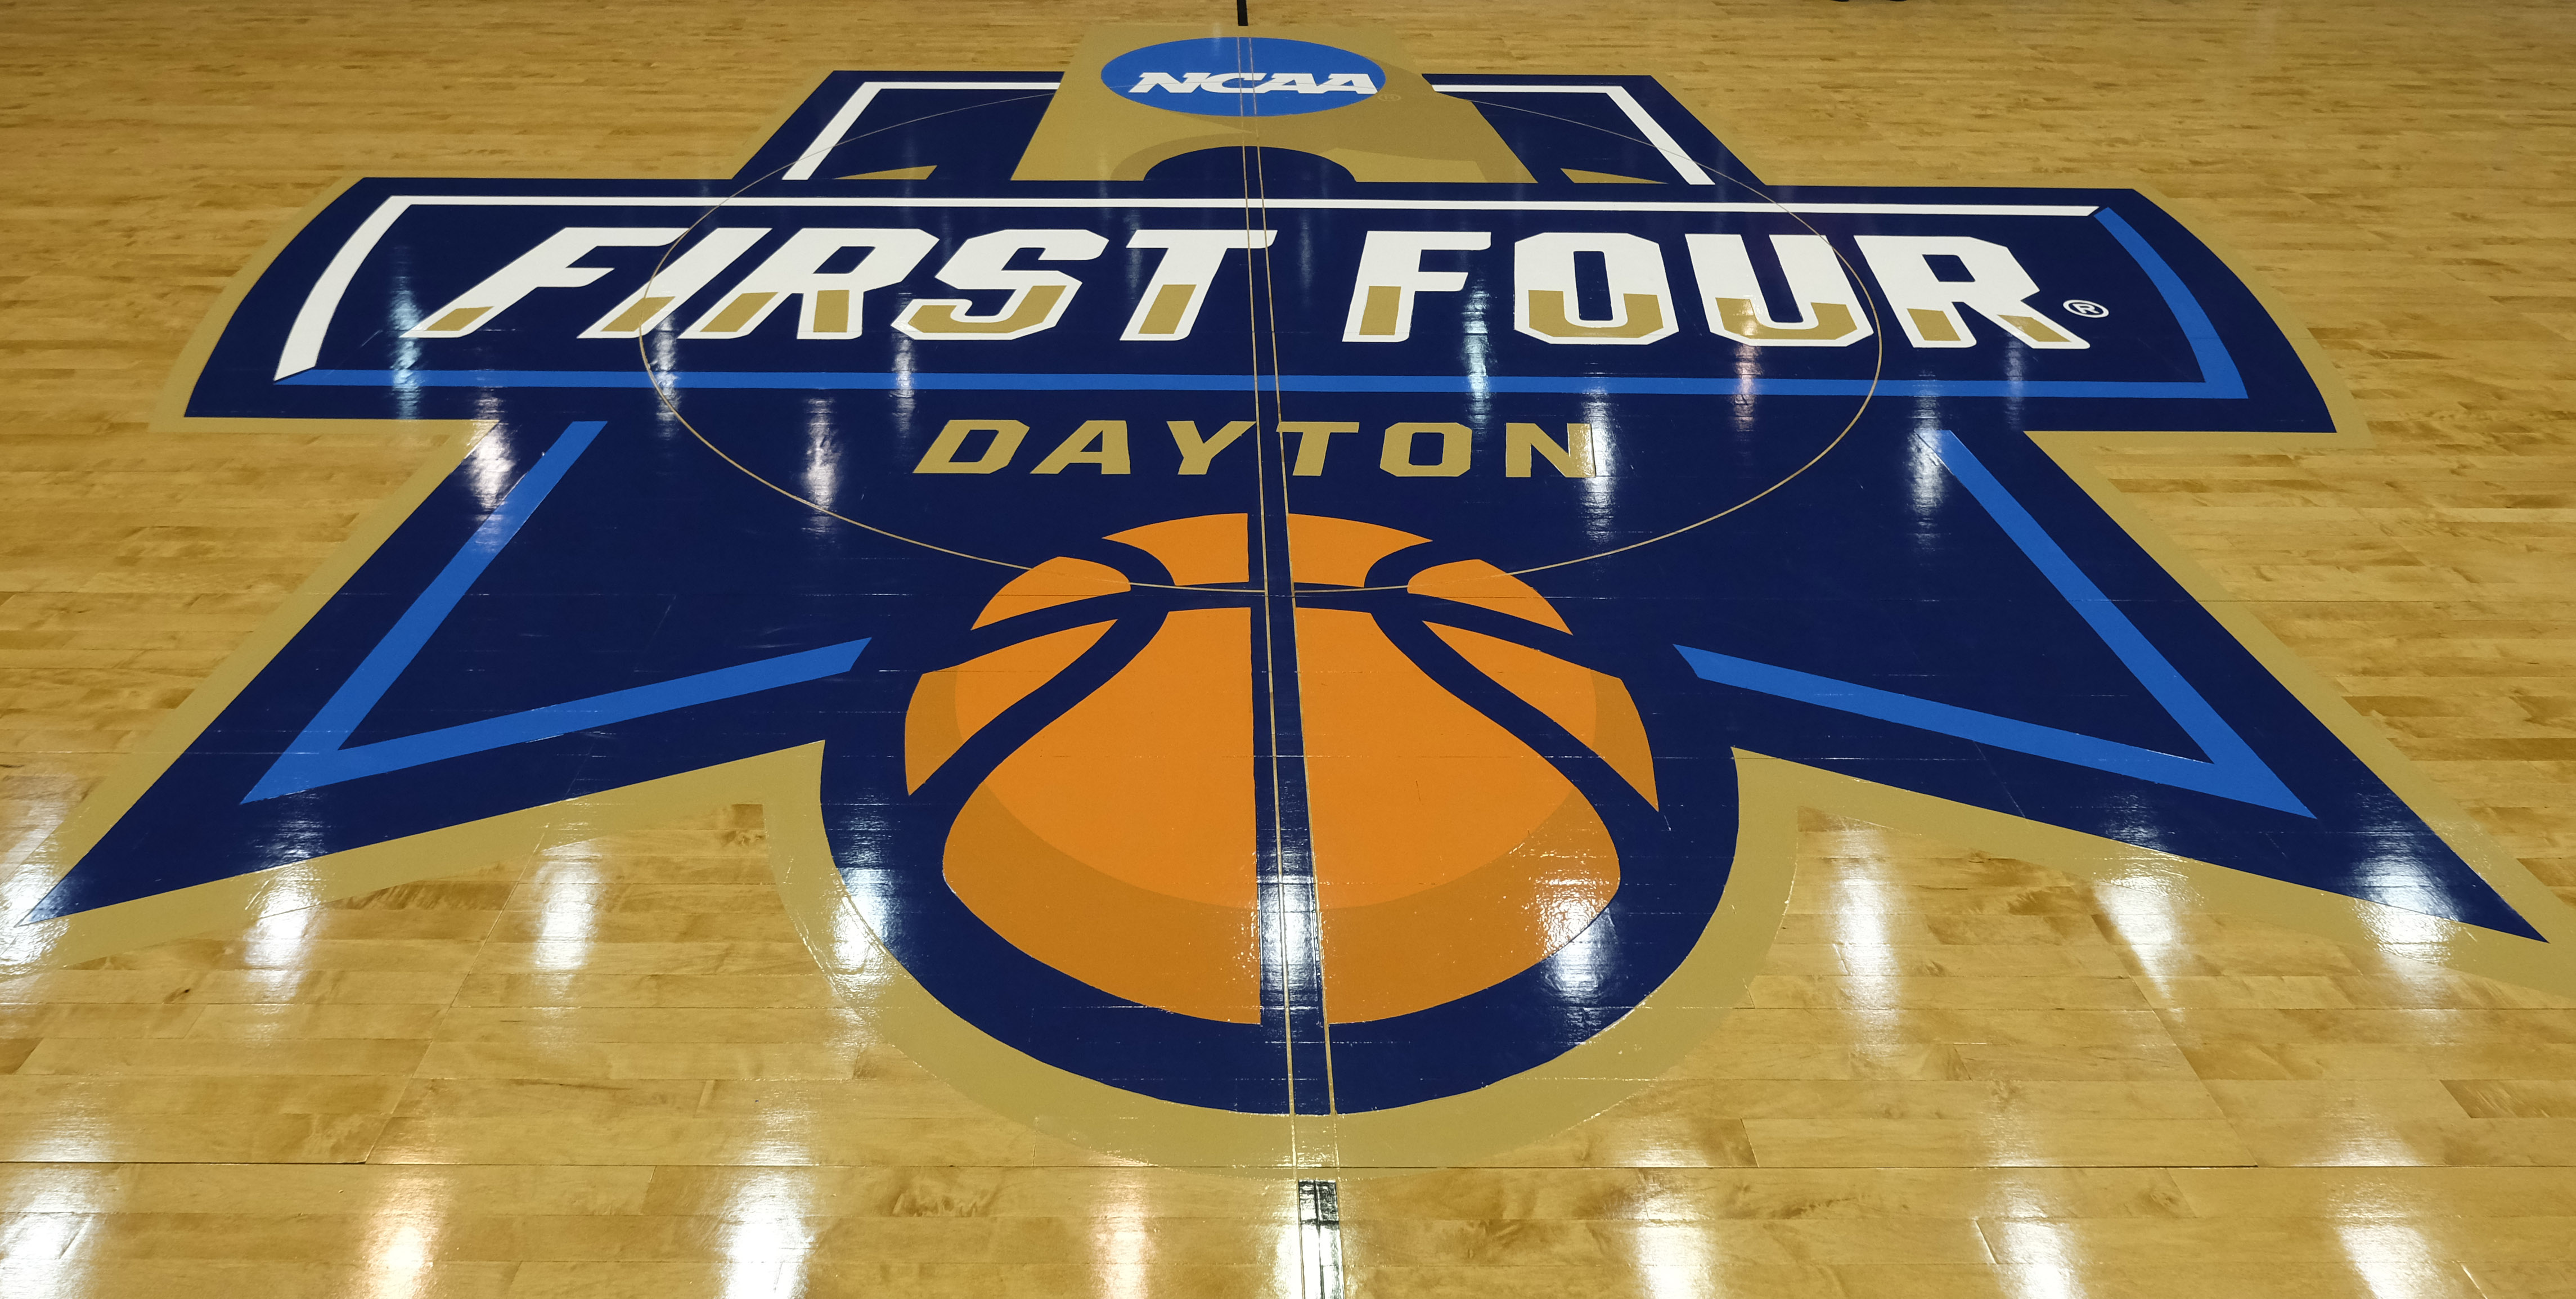 March Madness 2019 live stream: First Four game times, TV schedule for Tuesday and Wednesday